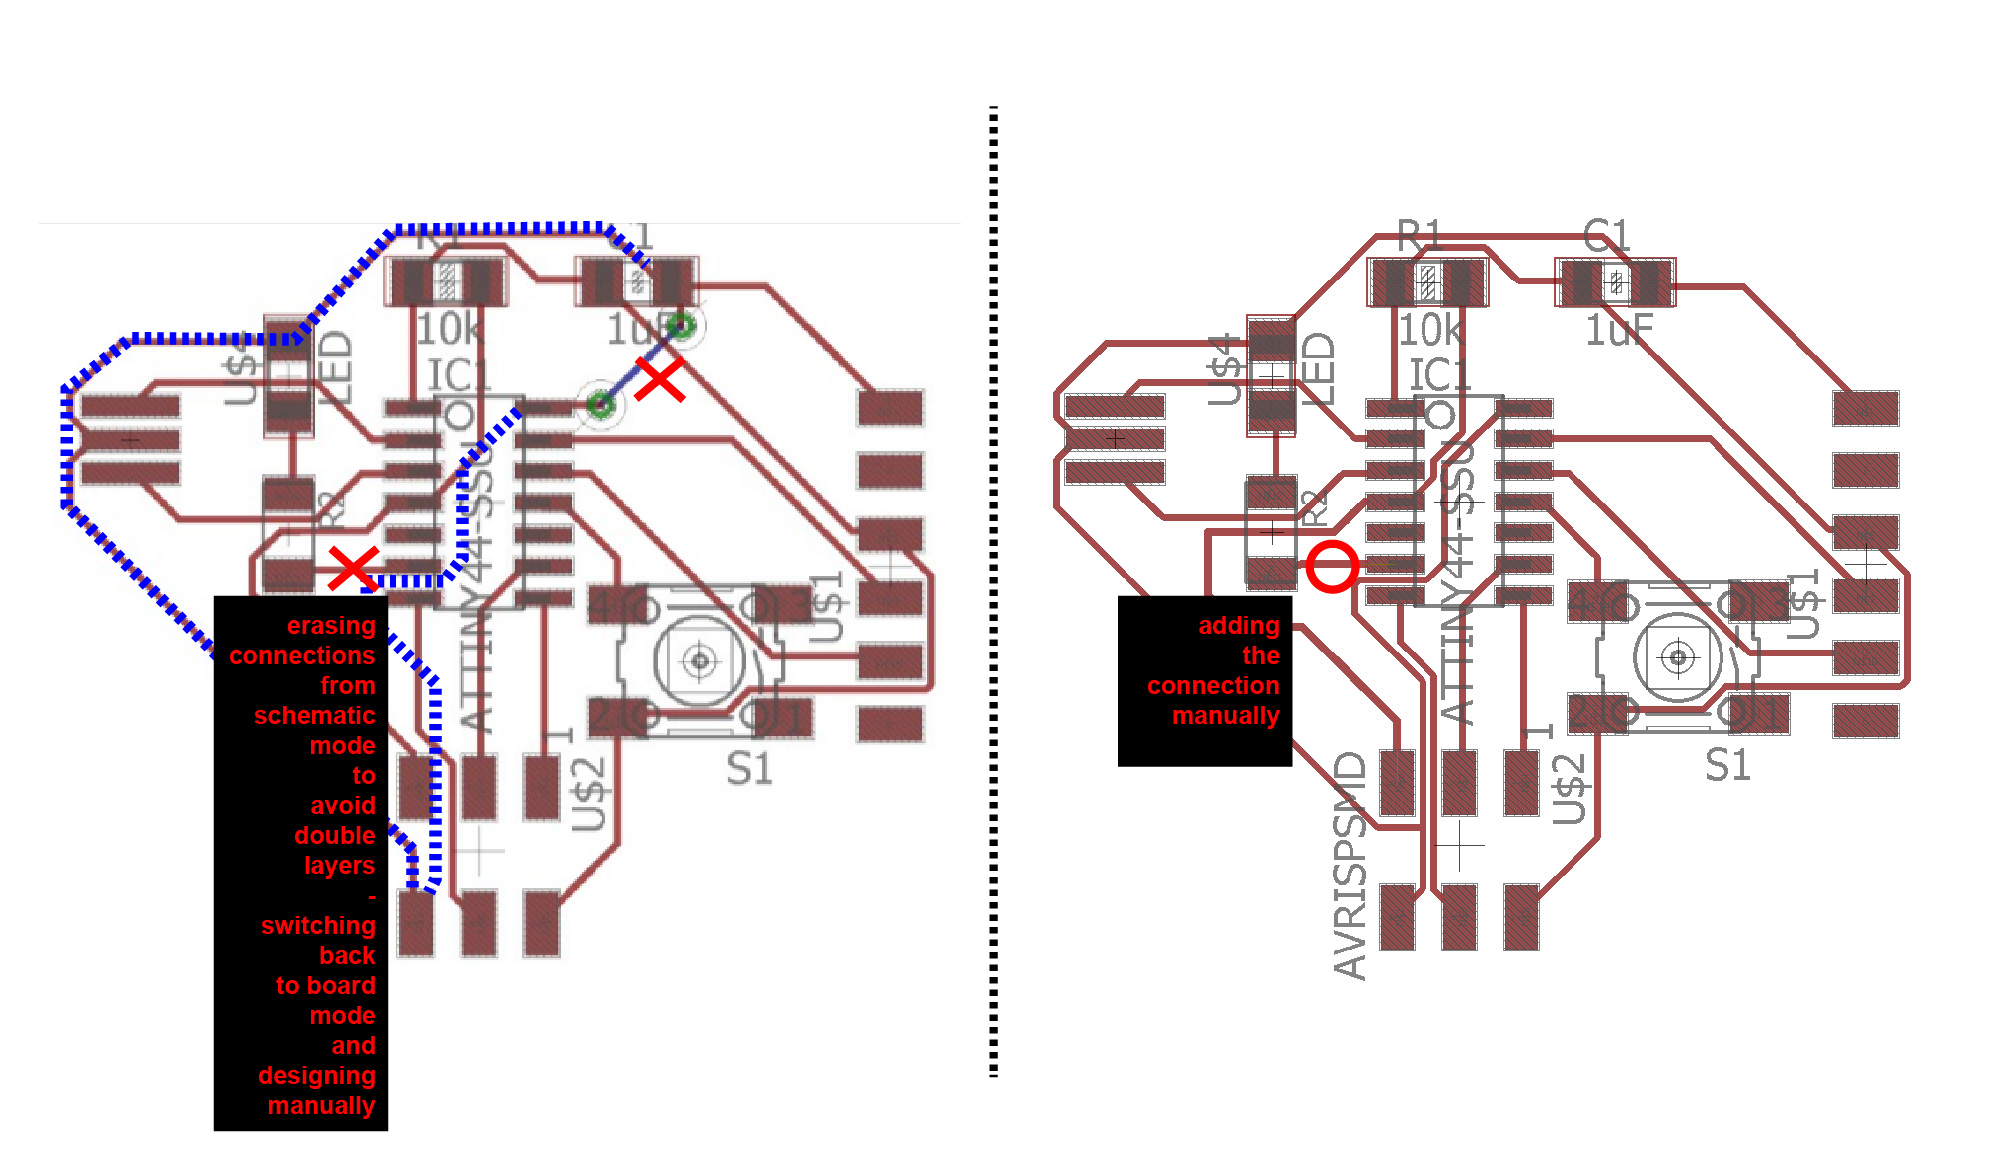 Maroula Bacharidou Figure 2 Schematic View In Eagle Pcb Software 3 Adding The Led And Button Moving Parts Apart Rotating Them Board Mode